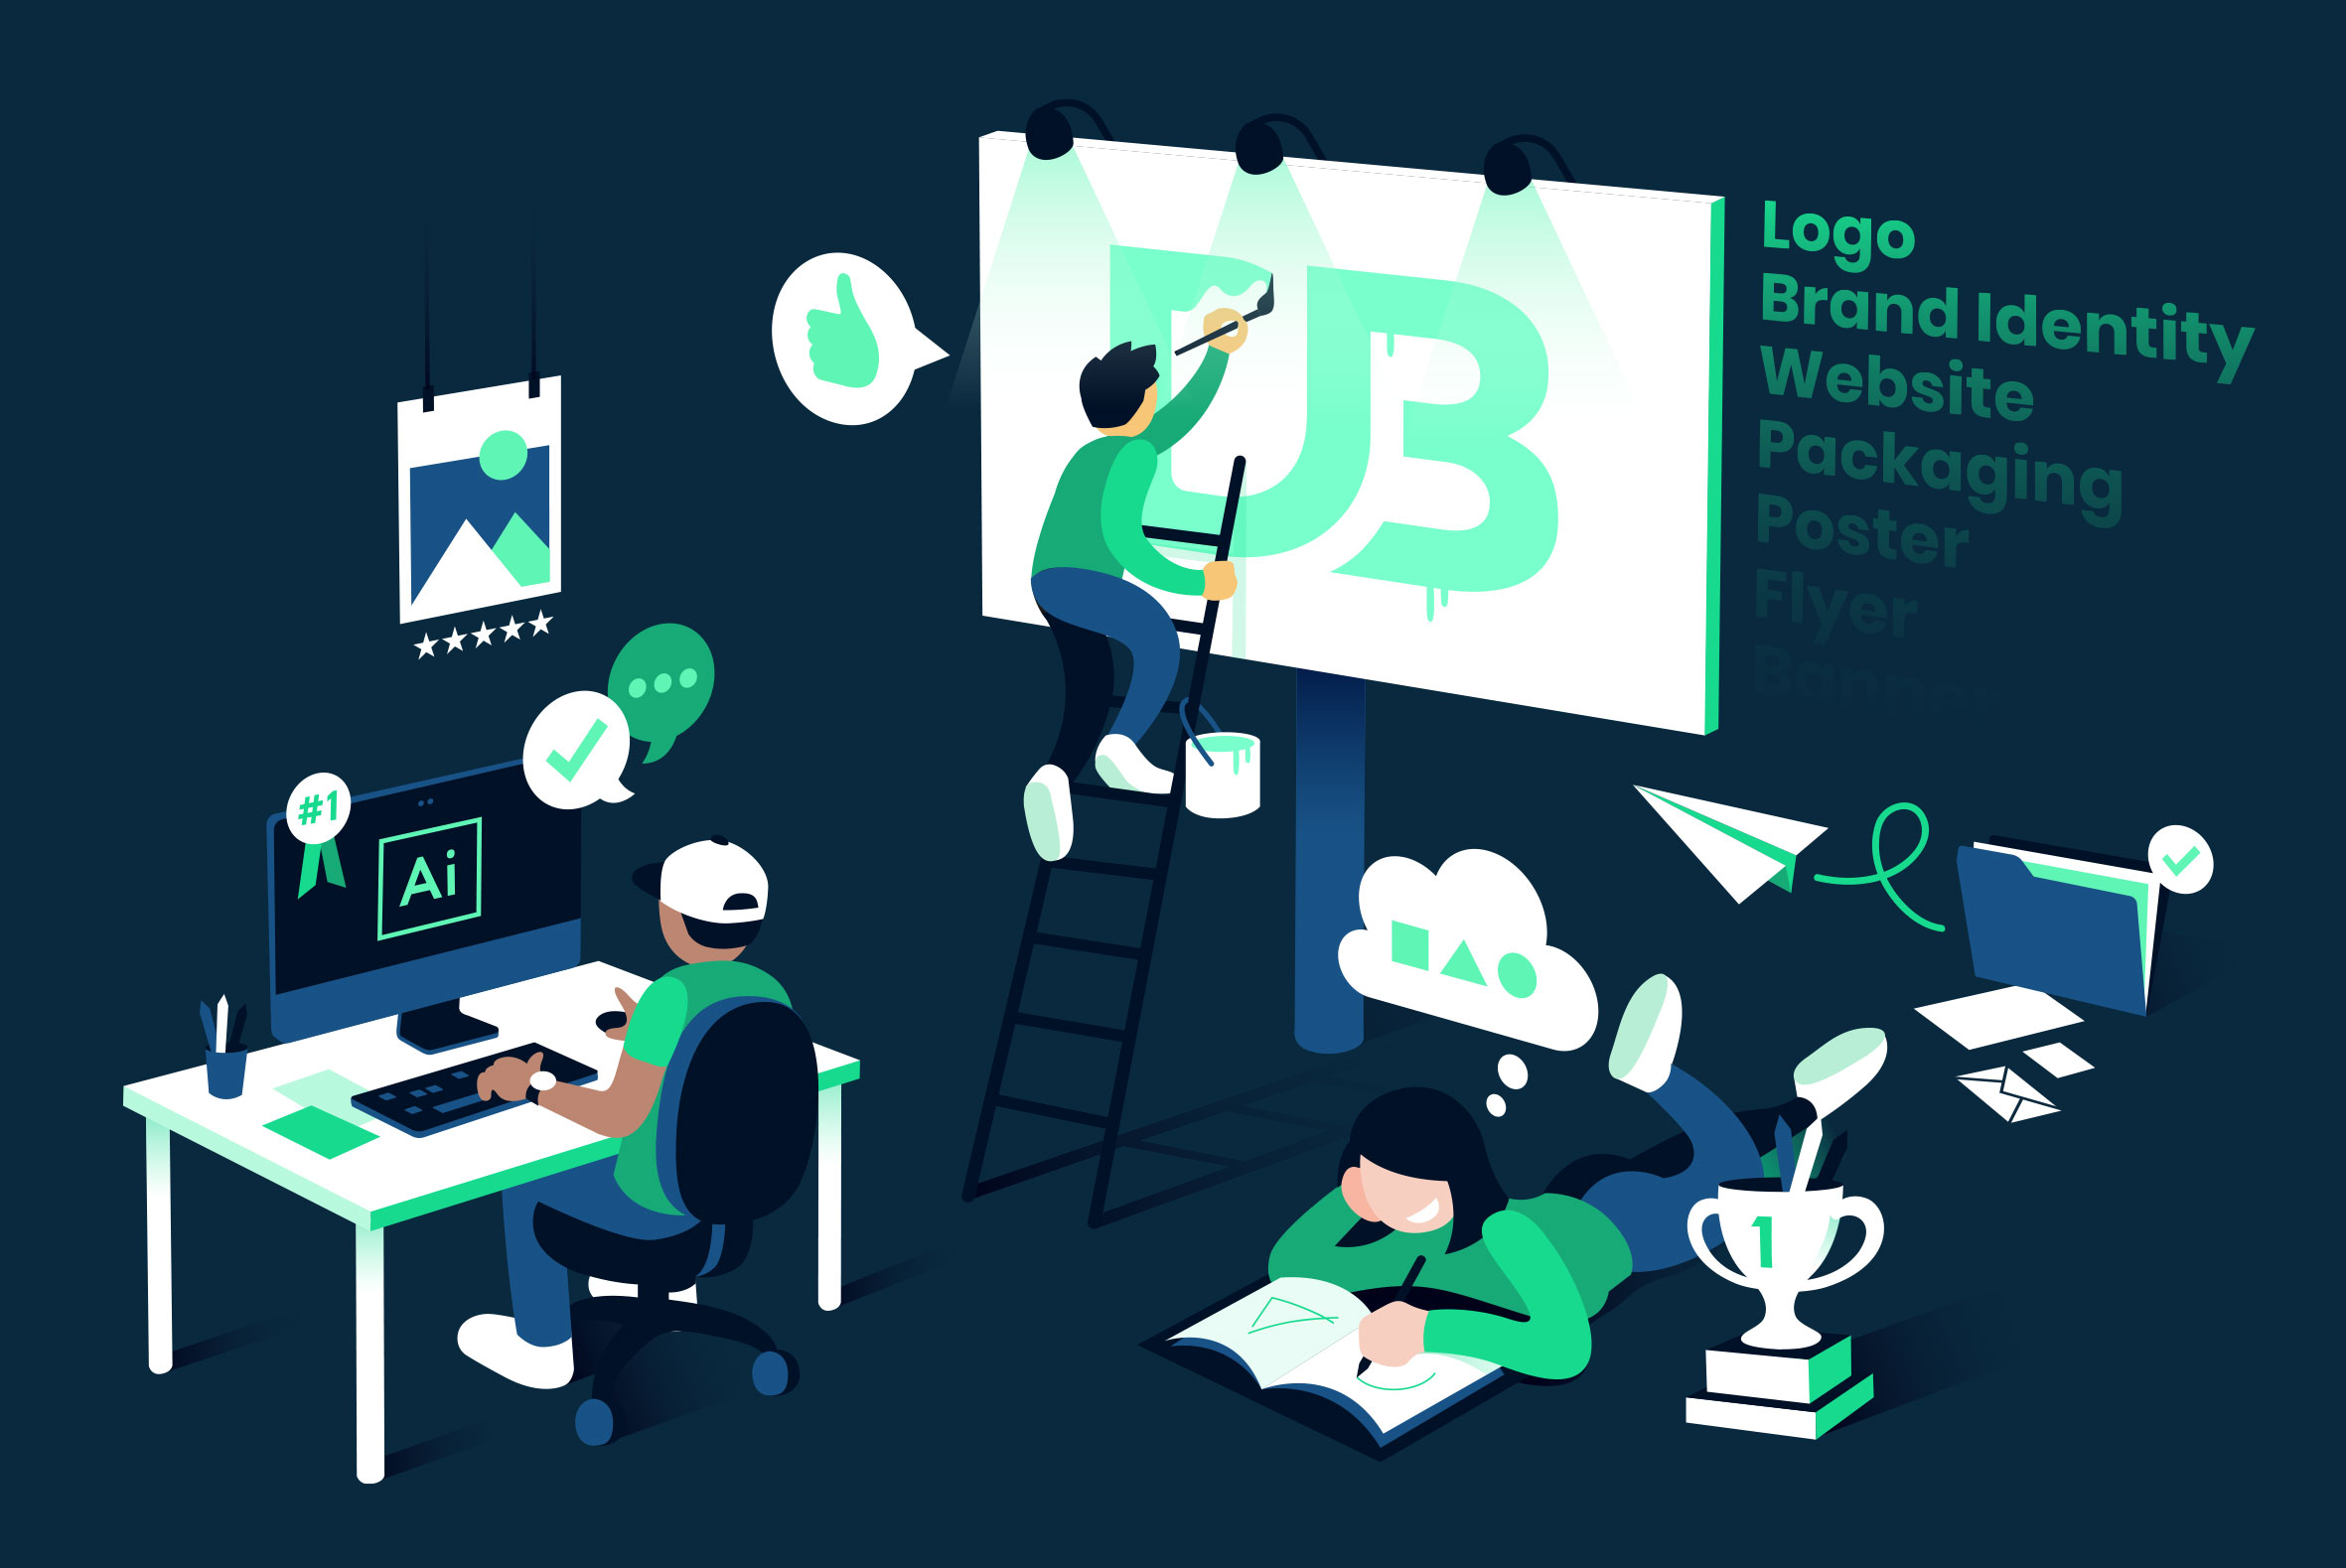 Crowdsourced Graphic Design Platform DesignBro Successfully Raised Seed Round Beyond Expectations